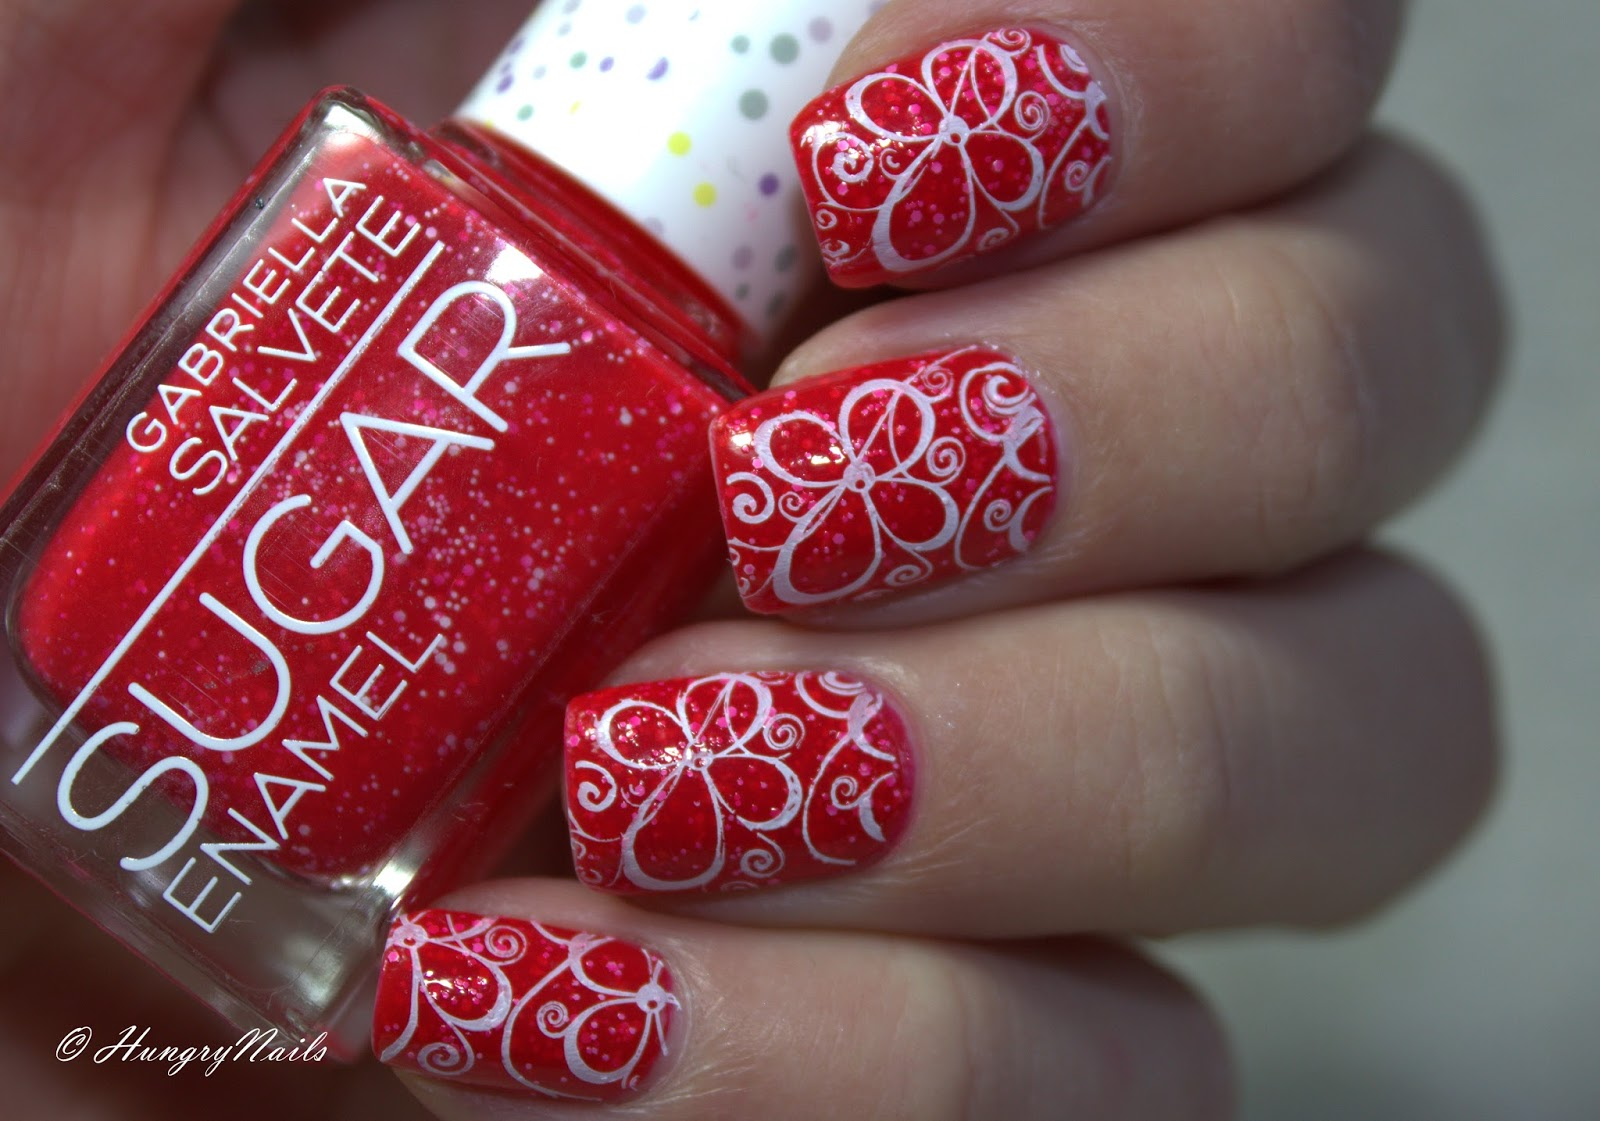 http://hungrynails.blogspot.de/2014/12/lacke-in-farbe-und-bunt-hellrot.html